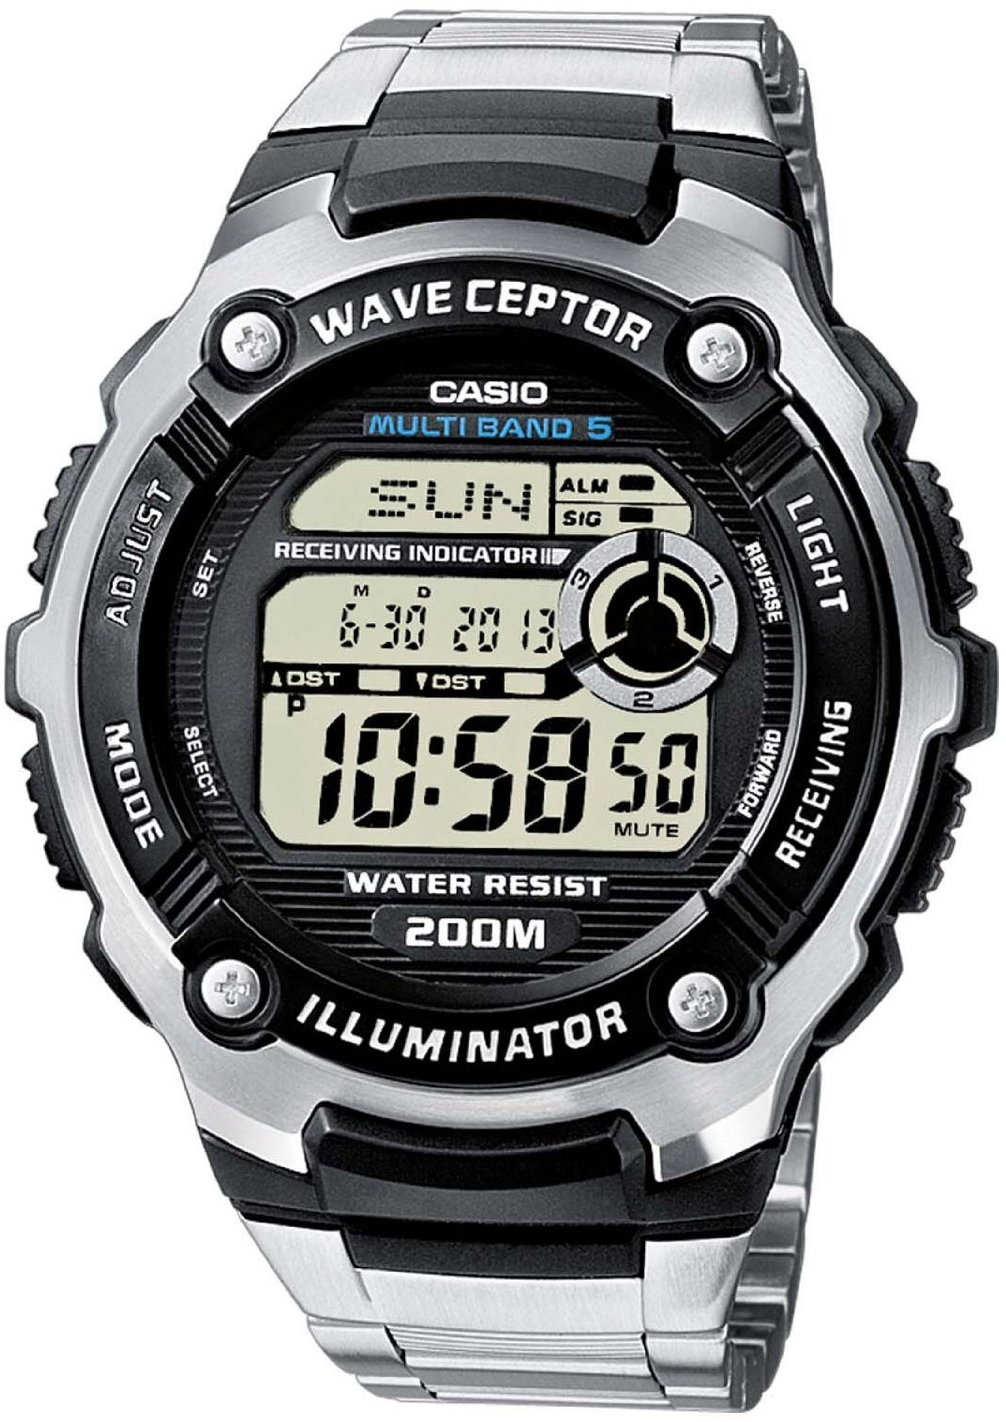 Casio Wave Ceptor WV-200DE-1A casio часы casio wv 58e 1a коллекция wave ceptor